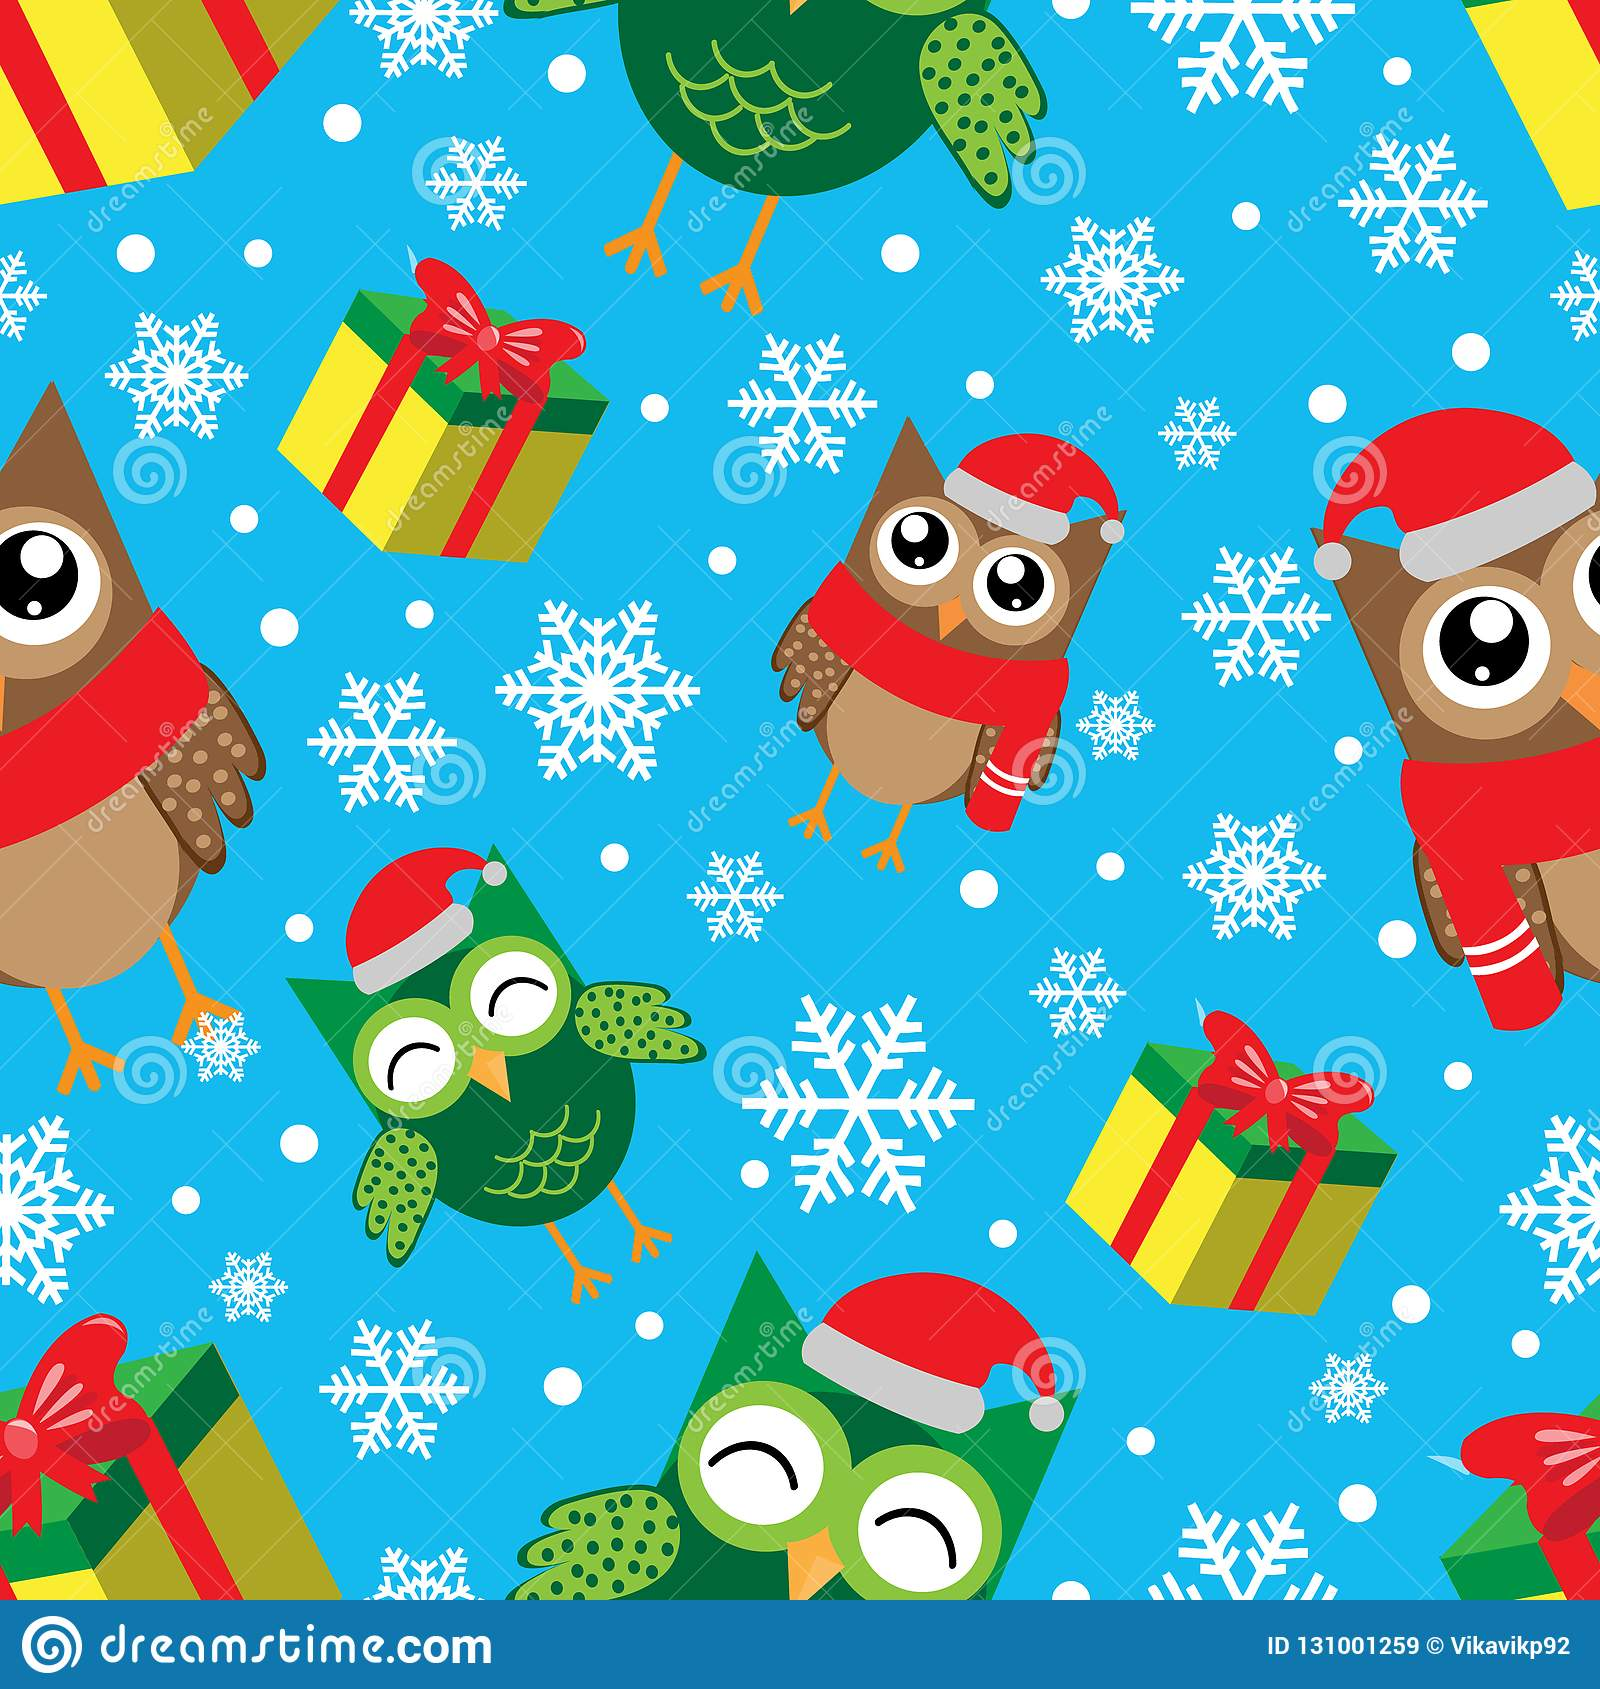 winter seamless pattern with snowflakes owls and gifts happy new year and merry christmas